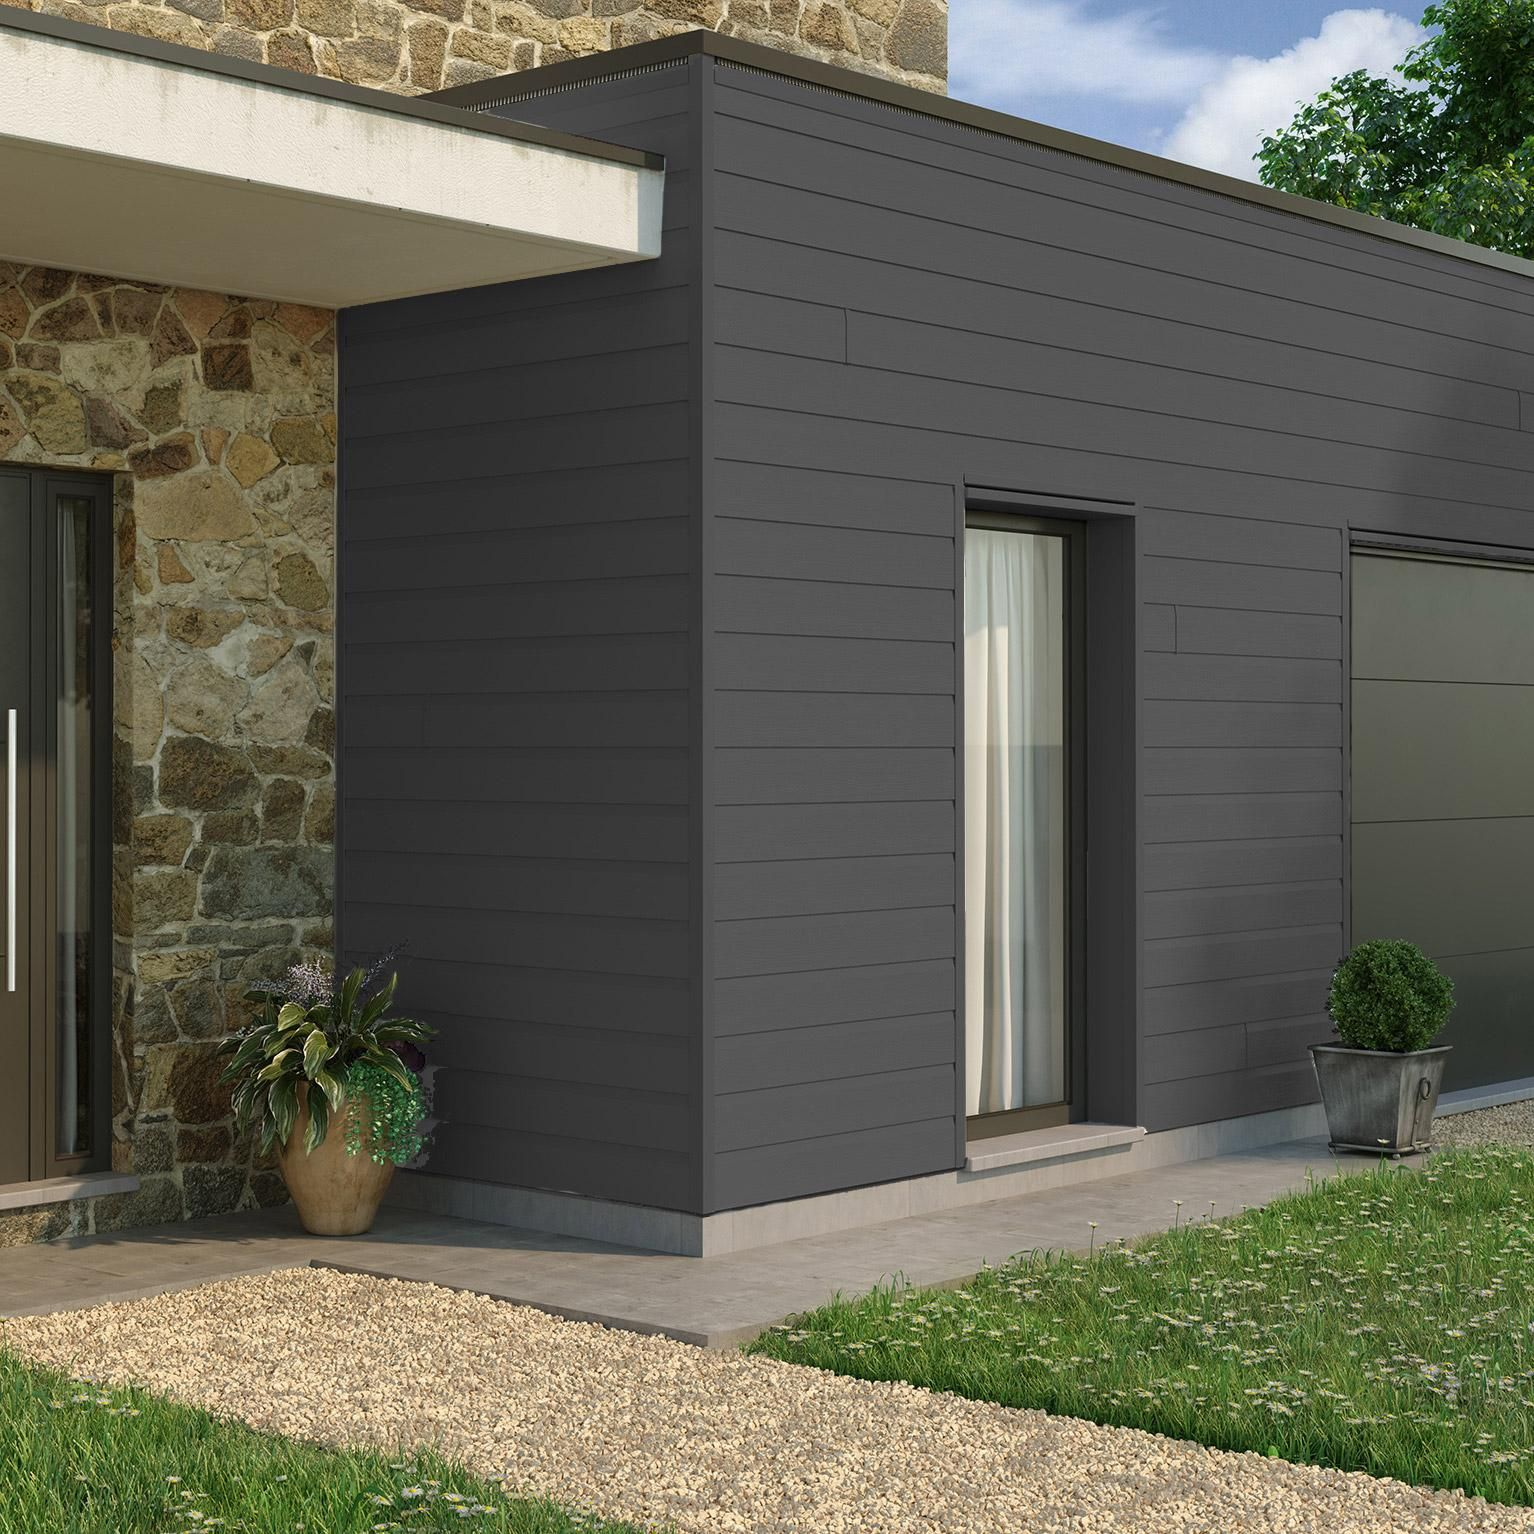 Clin Pour Bardage Anthracite Freefoam Solid Country 3 95 M En 2020 Bardage Gris Bardage Bardage Facade